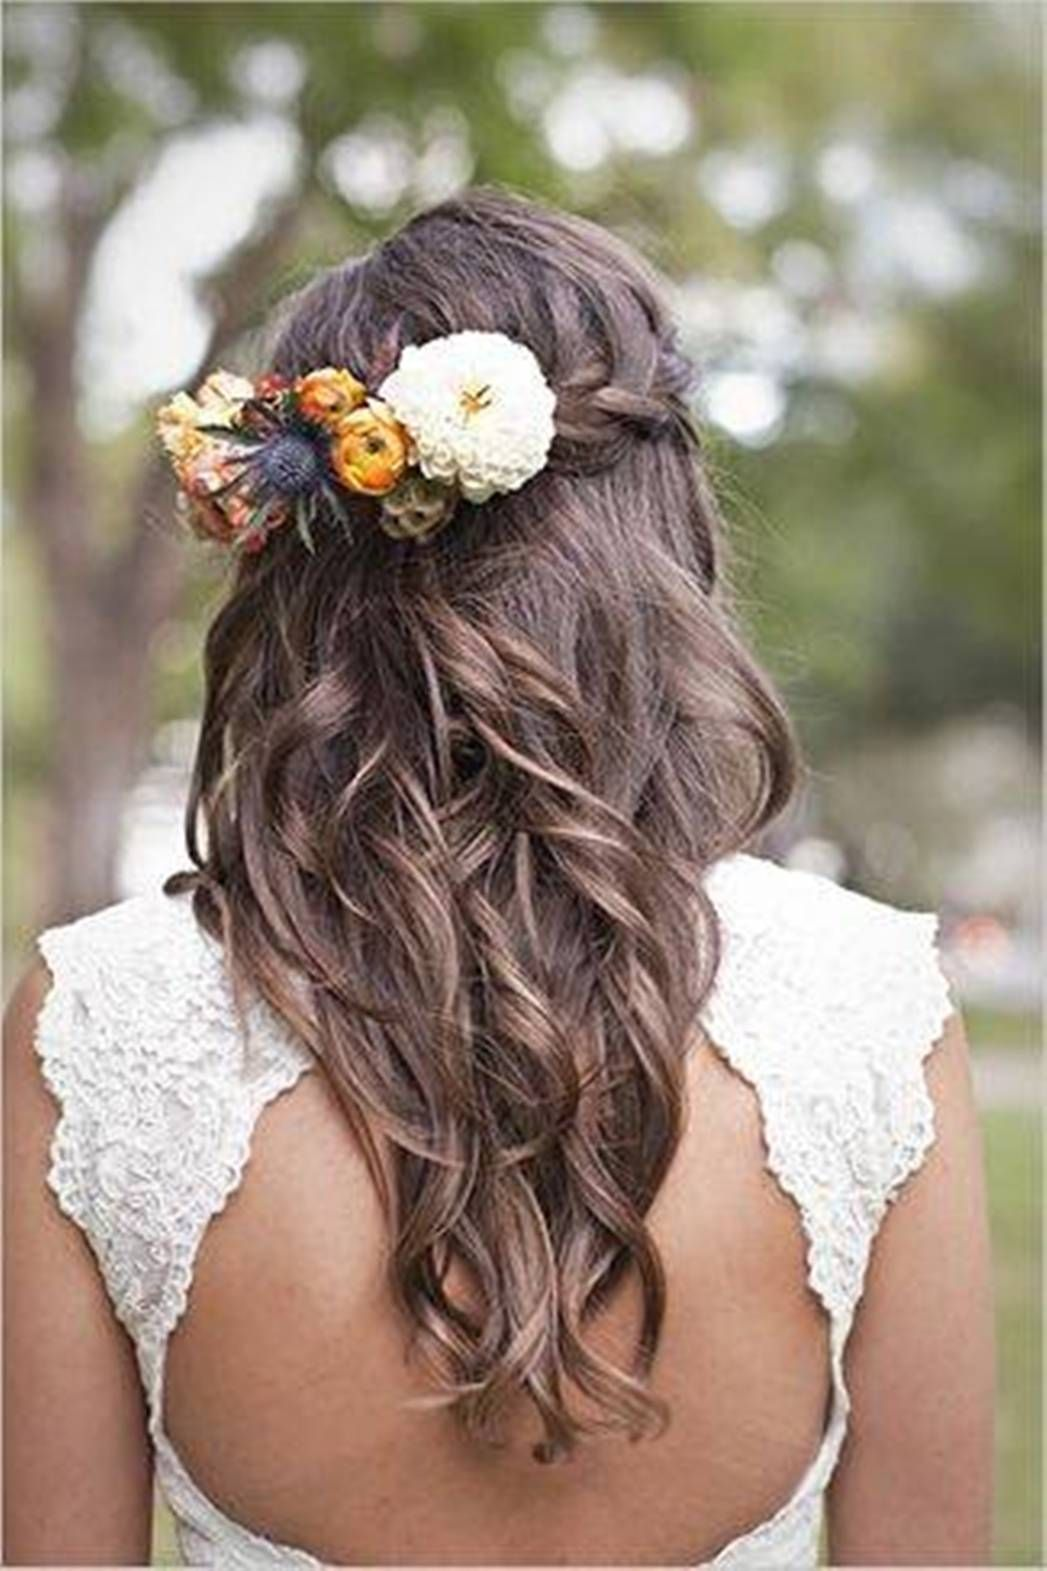 Sensational 1000 Images About Wedding Hairstyle On Pinterest Wedding Hairstyle Inspiration Daily Dogsangcom